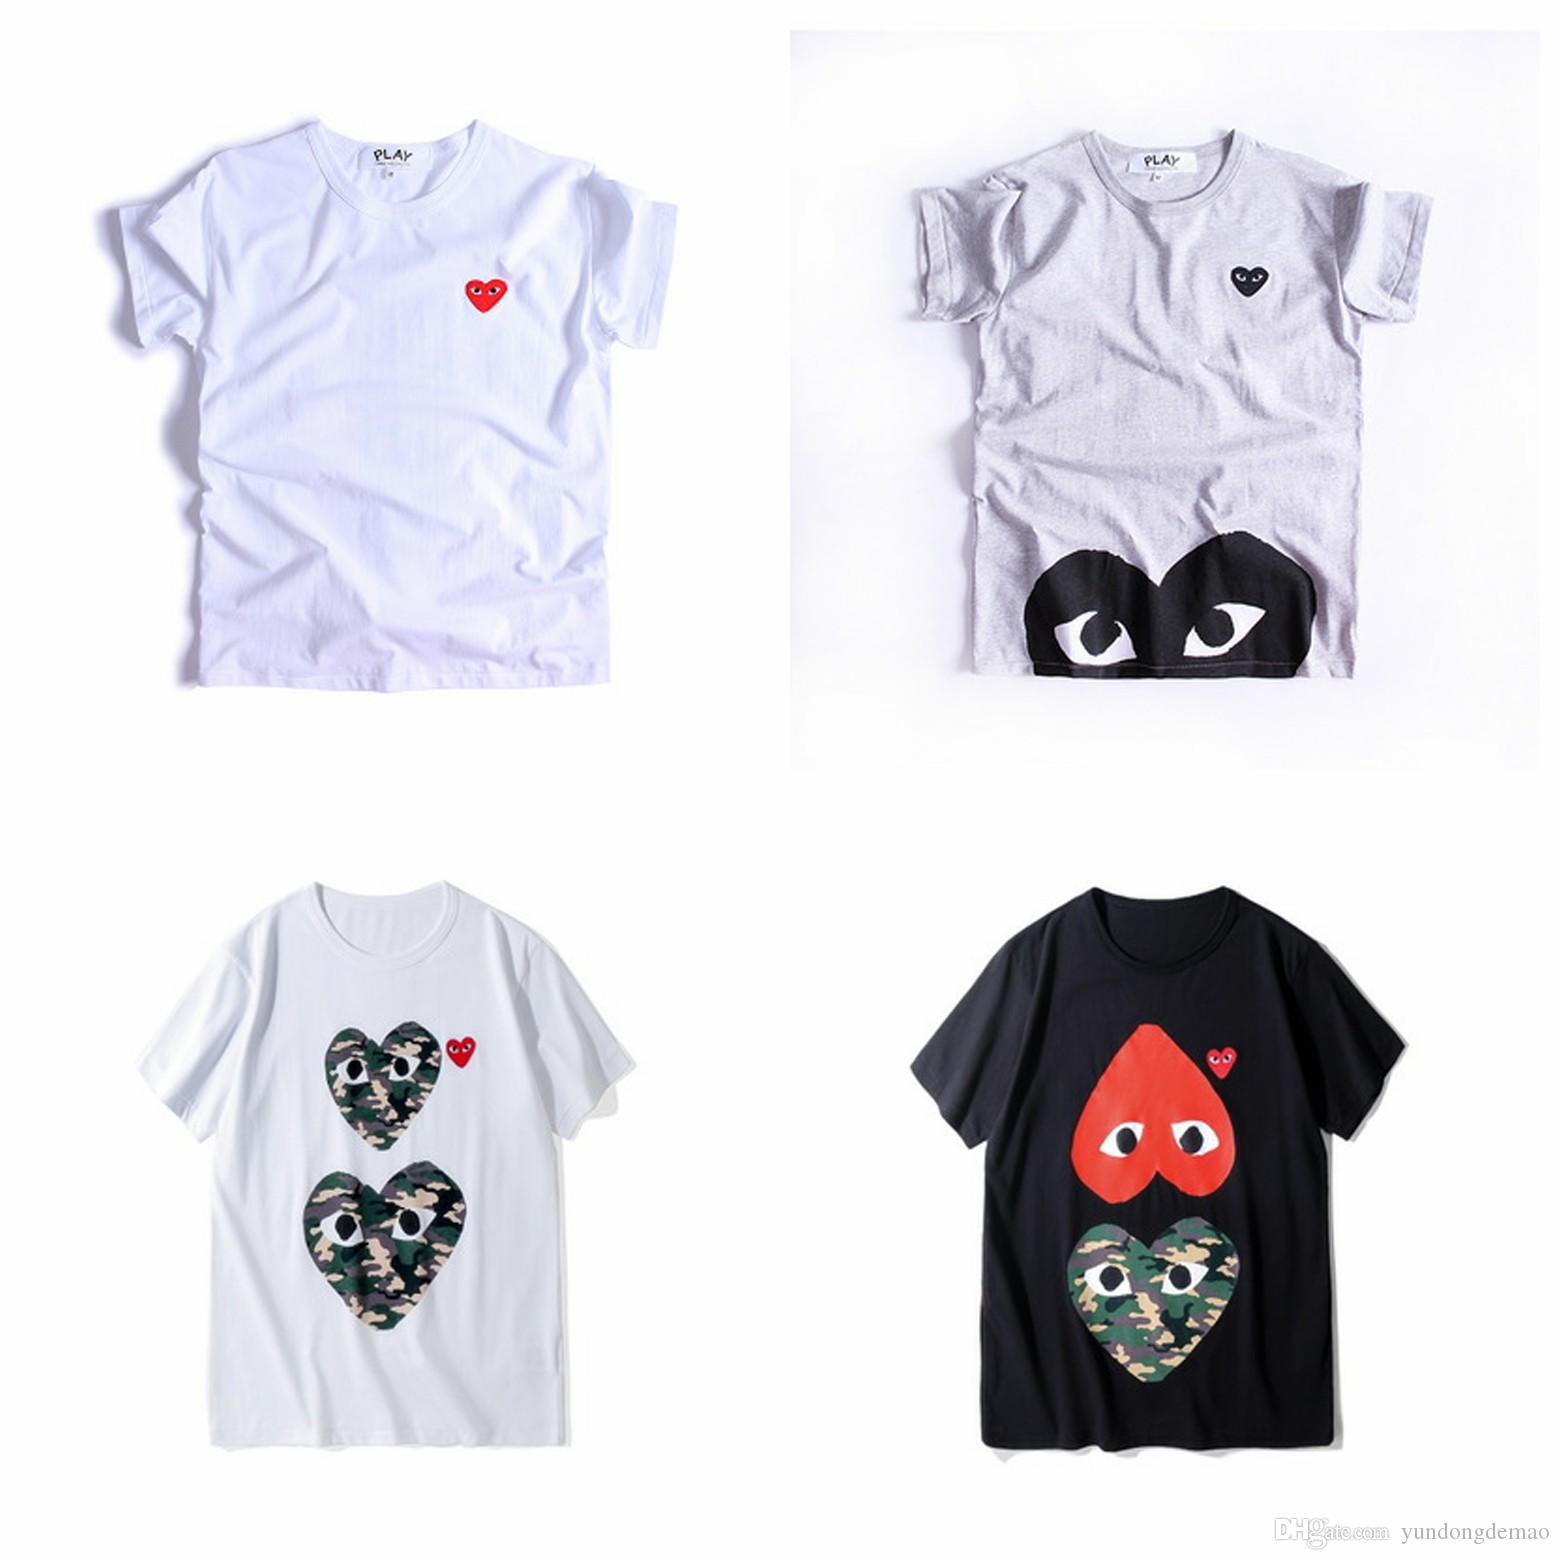 Lover COM Best Quality Men Women CommeS Black New play 1 CDG Embroidered Double Heart short Sleeve T-shirts Embroidery Red Heart Tee